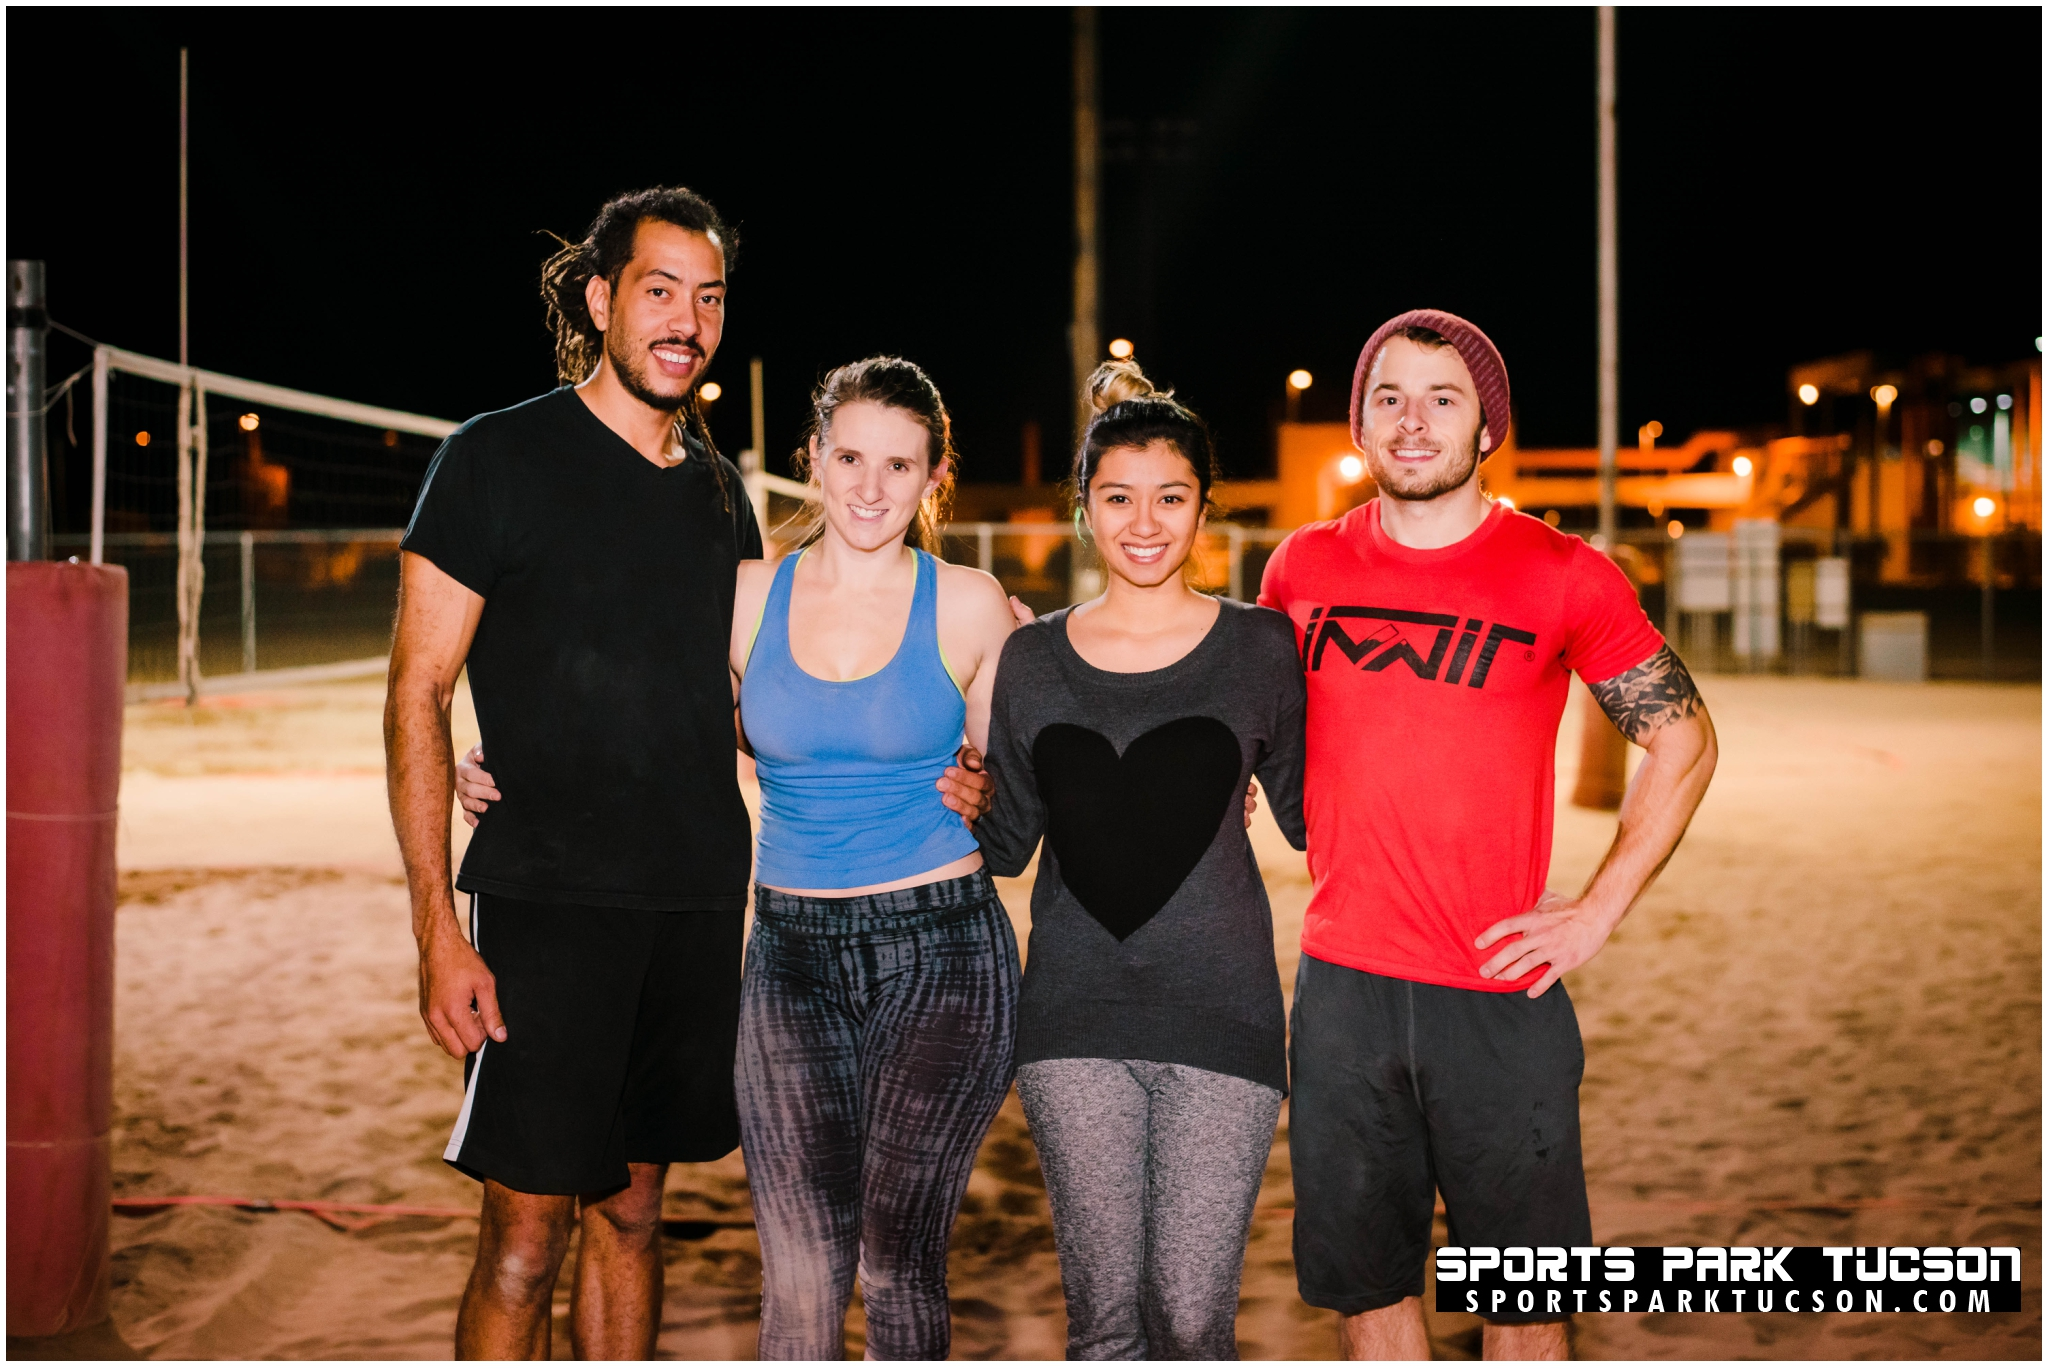 Volleyball Wed Co-ed 4 v 4 - Silver, Team: The Newbies